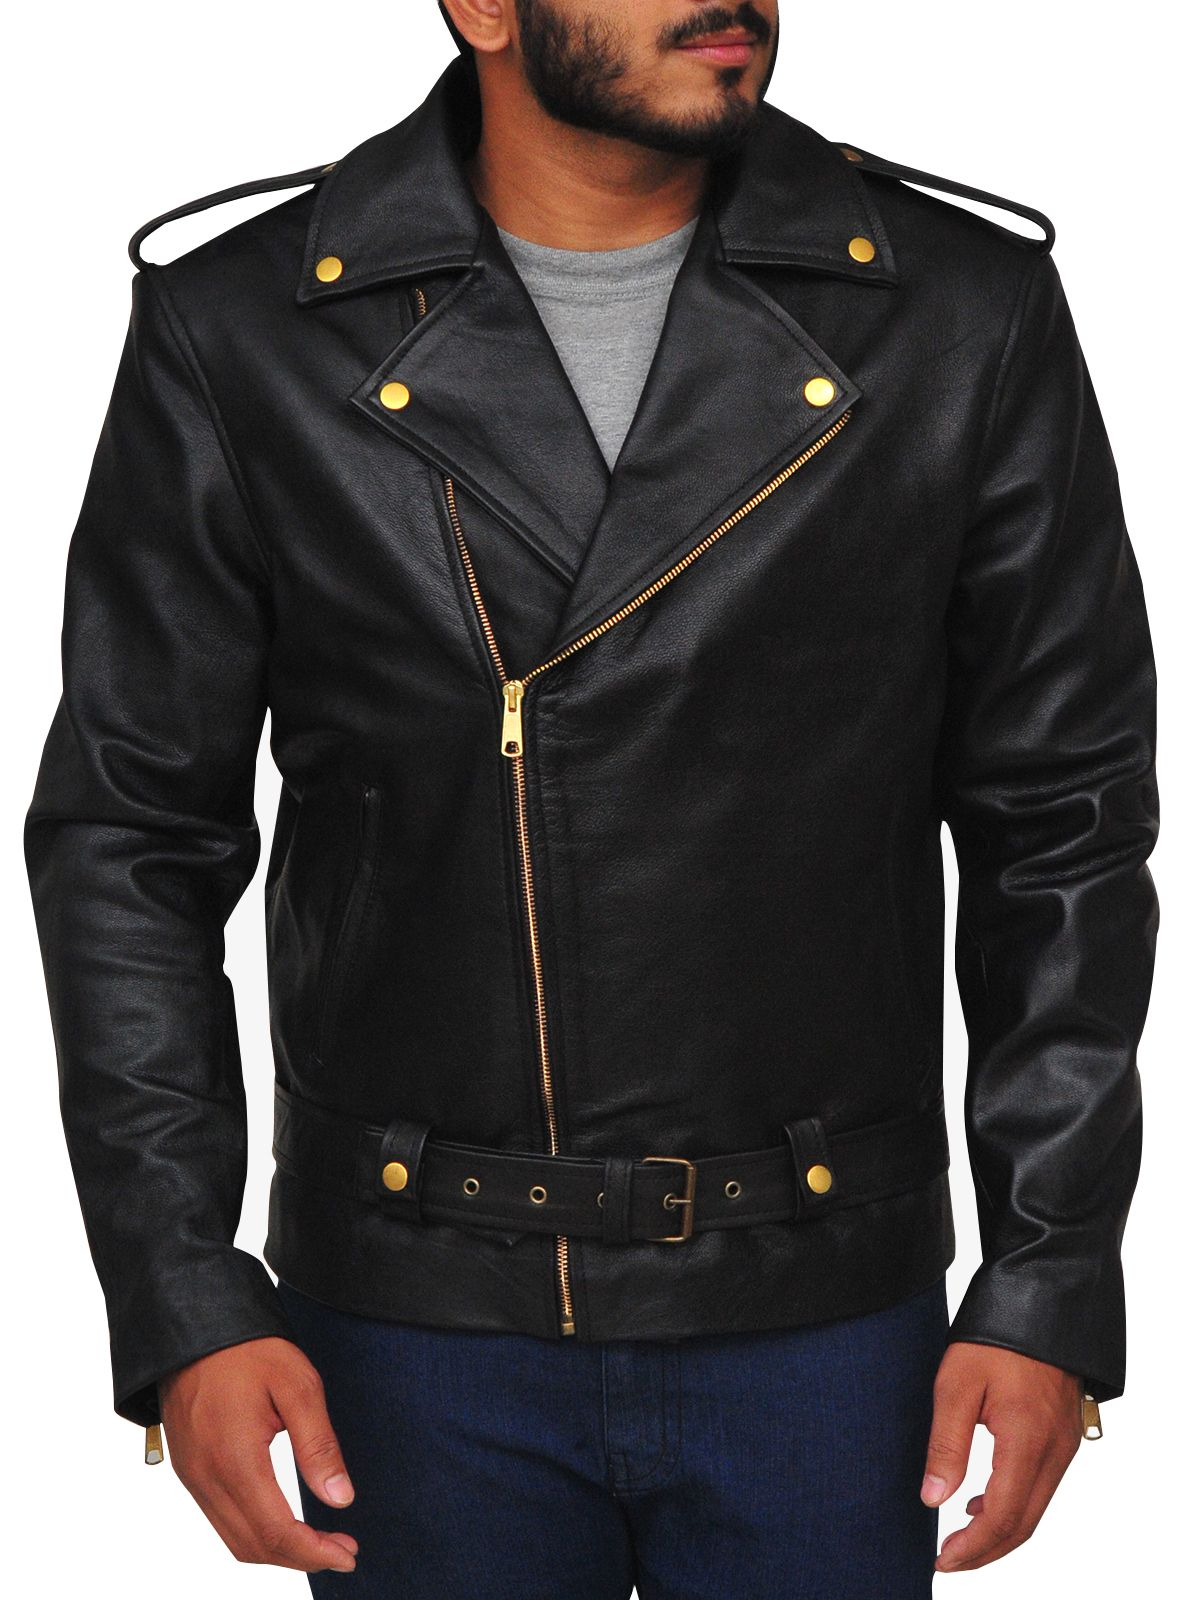 Mauvetree Presents You This Outclass Black Brando Leather Jacket For Men It Is Made Up Of 100 Stylish Leather Jacket Leather Jacket Black Leather Jacket Men